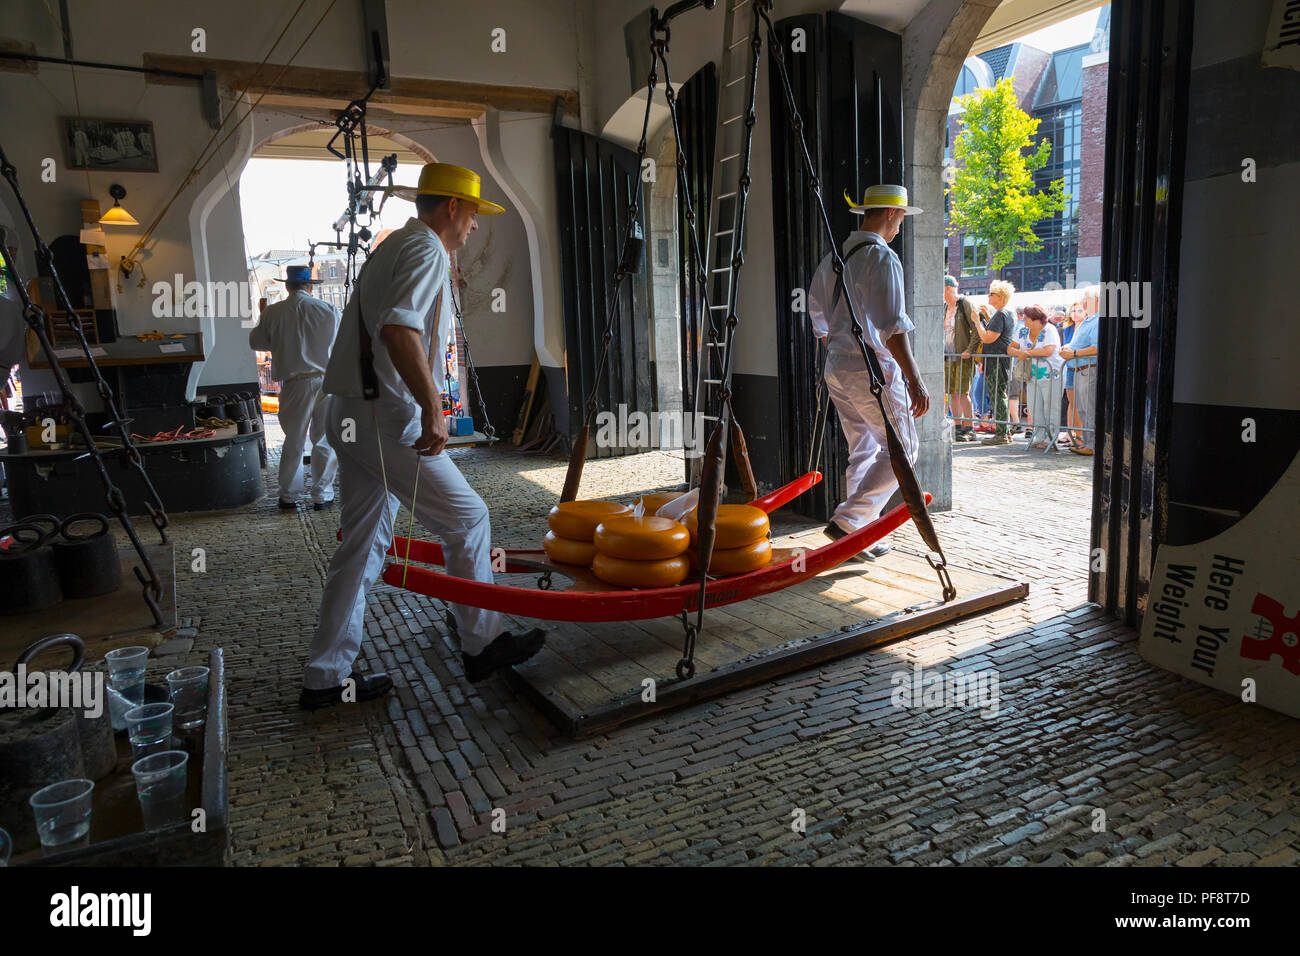 Alkmaar, Netherlands - July 20, 2018: Cheese carriers putting the cheeses on the scale to be weighted in the Waag before being sold on the market - Stock Image